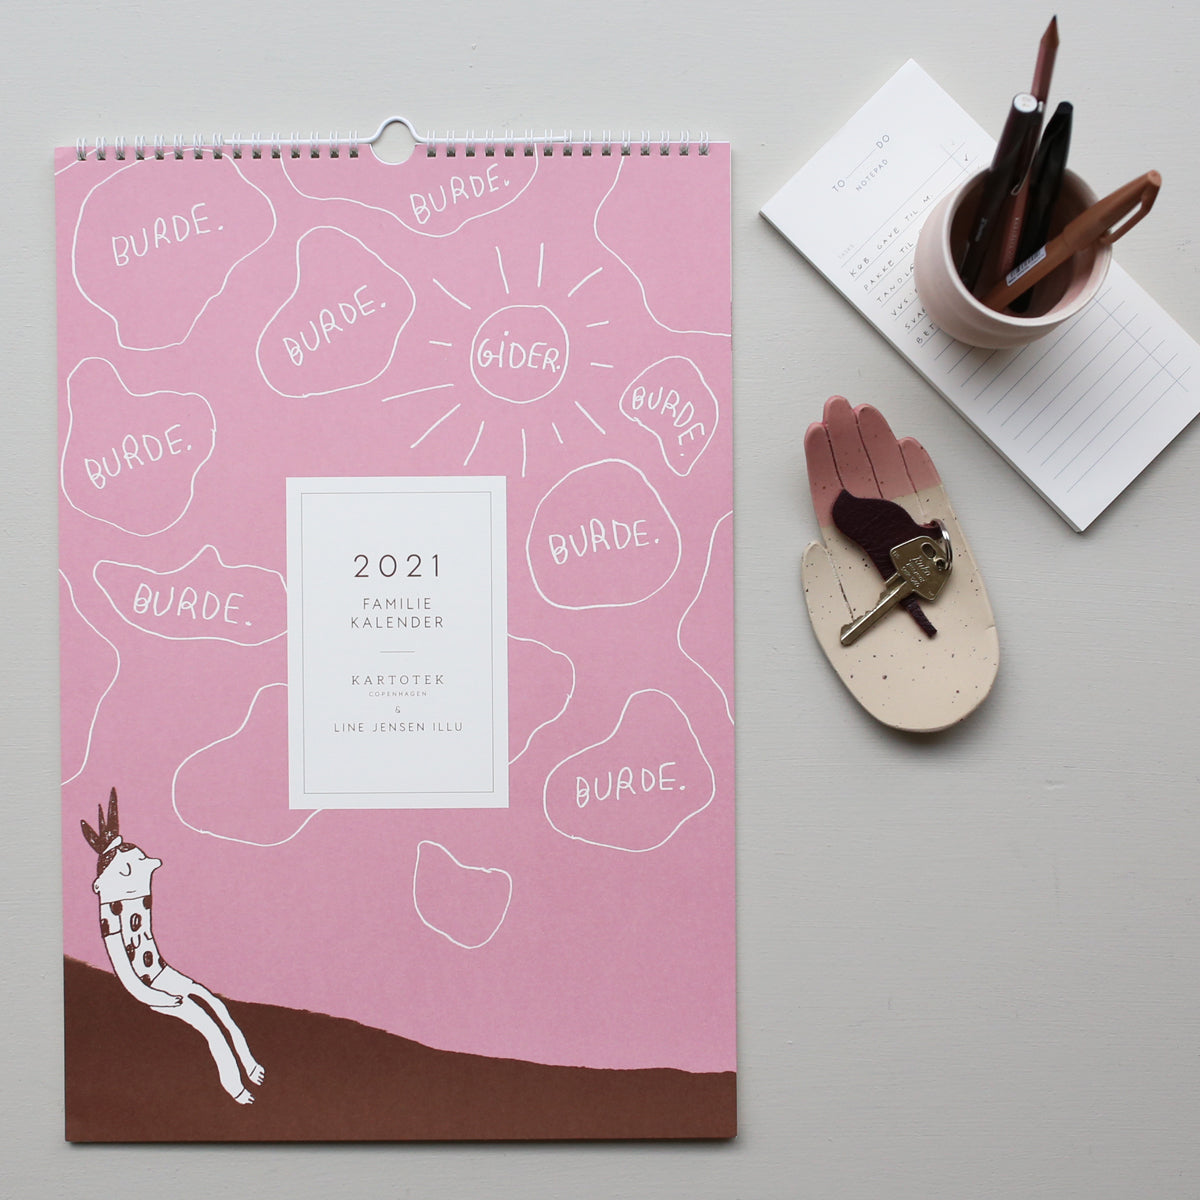 products/2021_Familiekalender_02.jpg